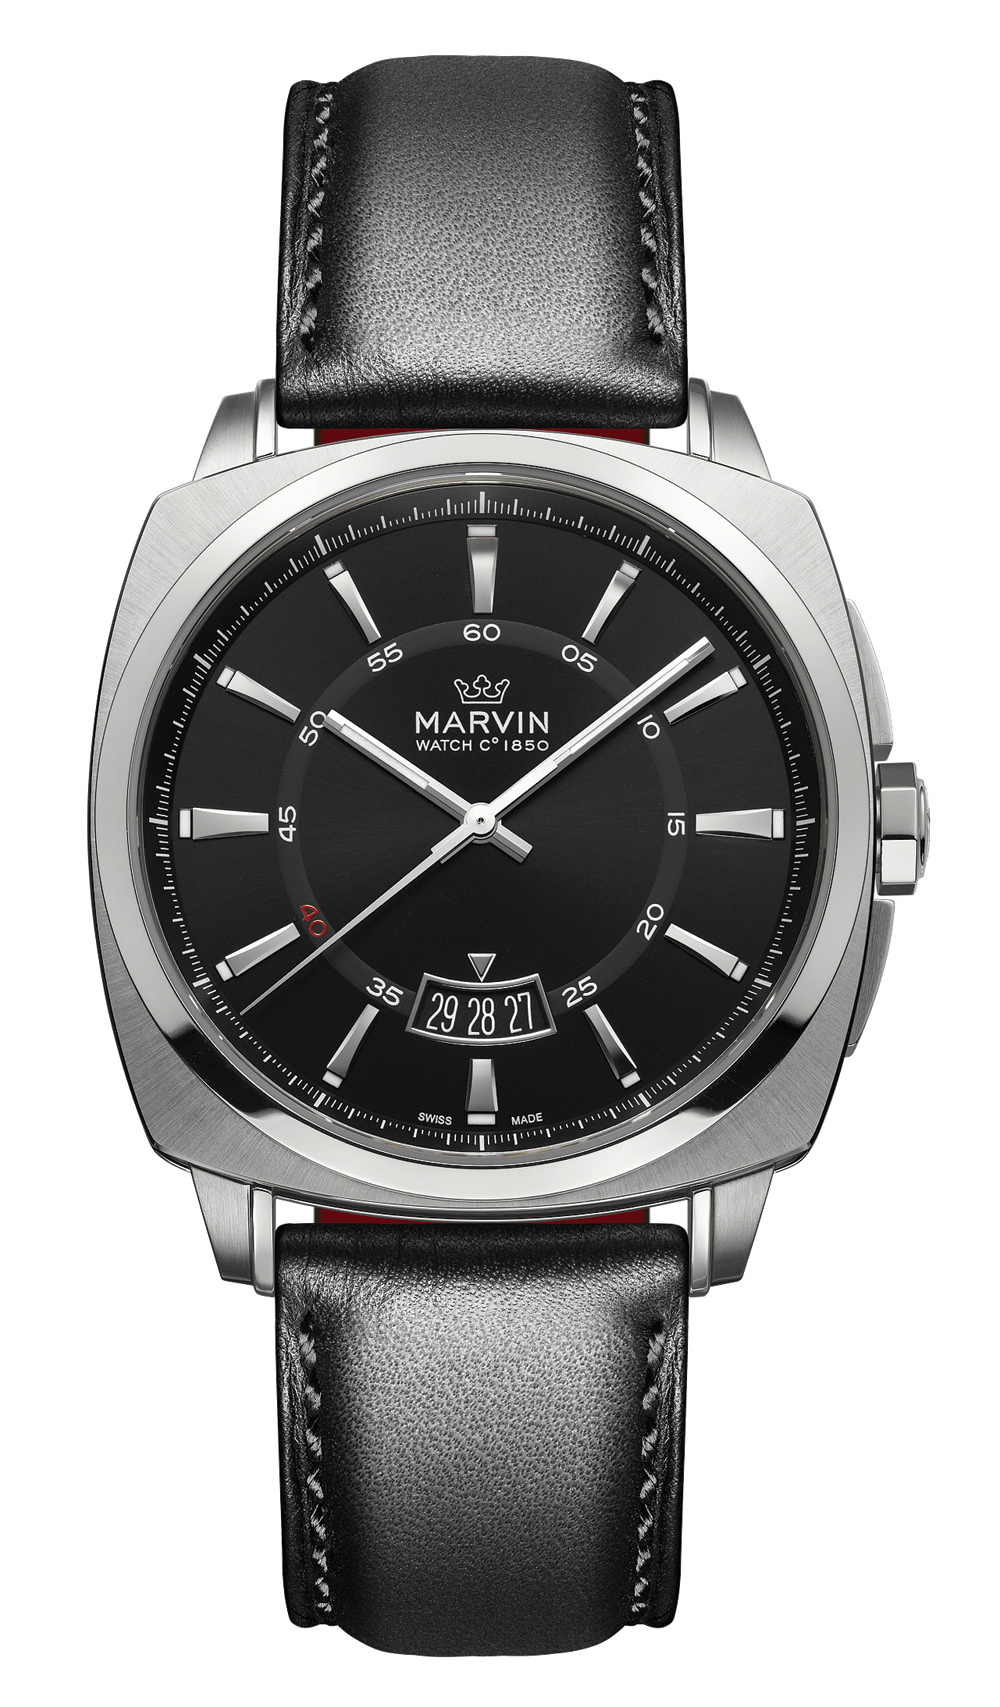 Marvin - Malton 160 Cushion